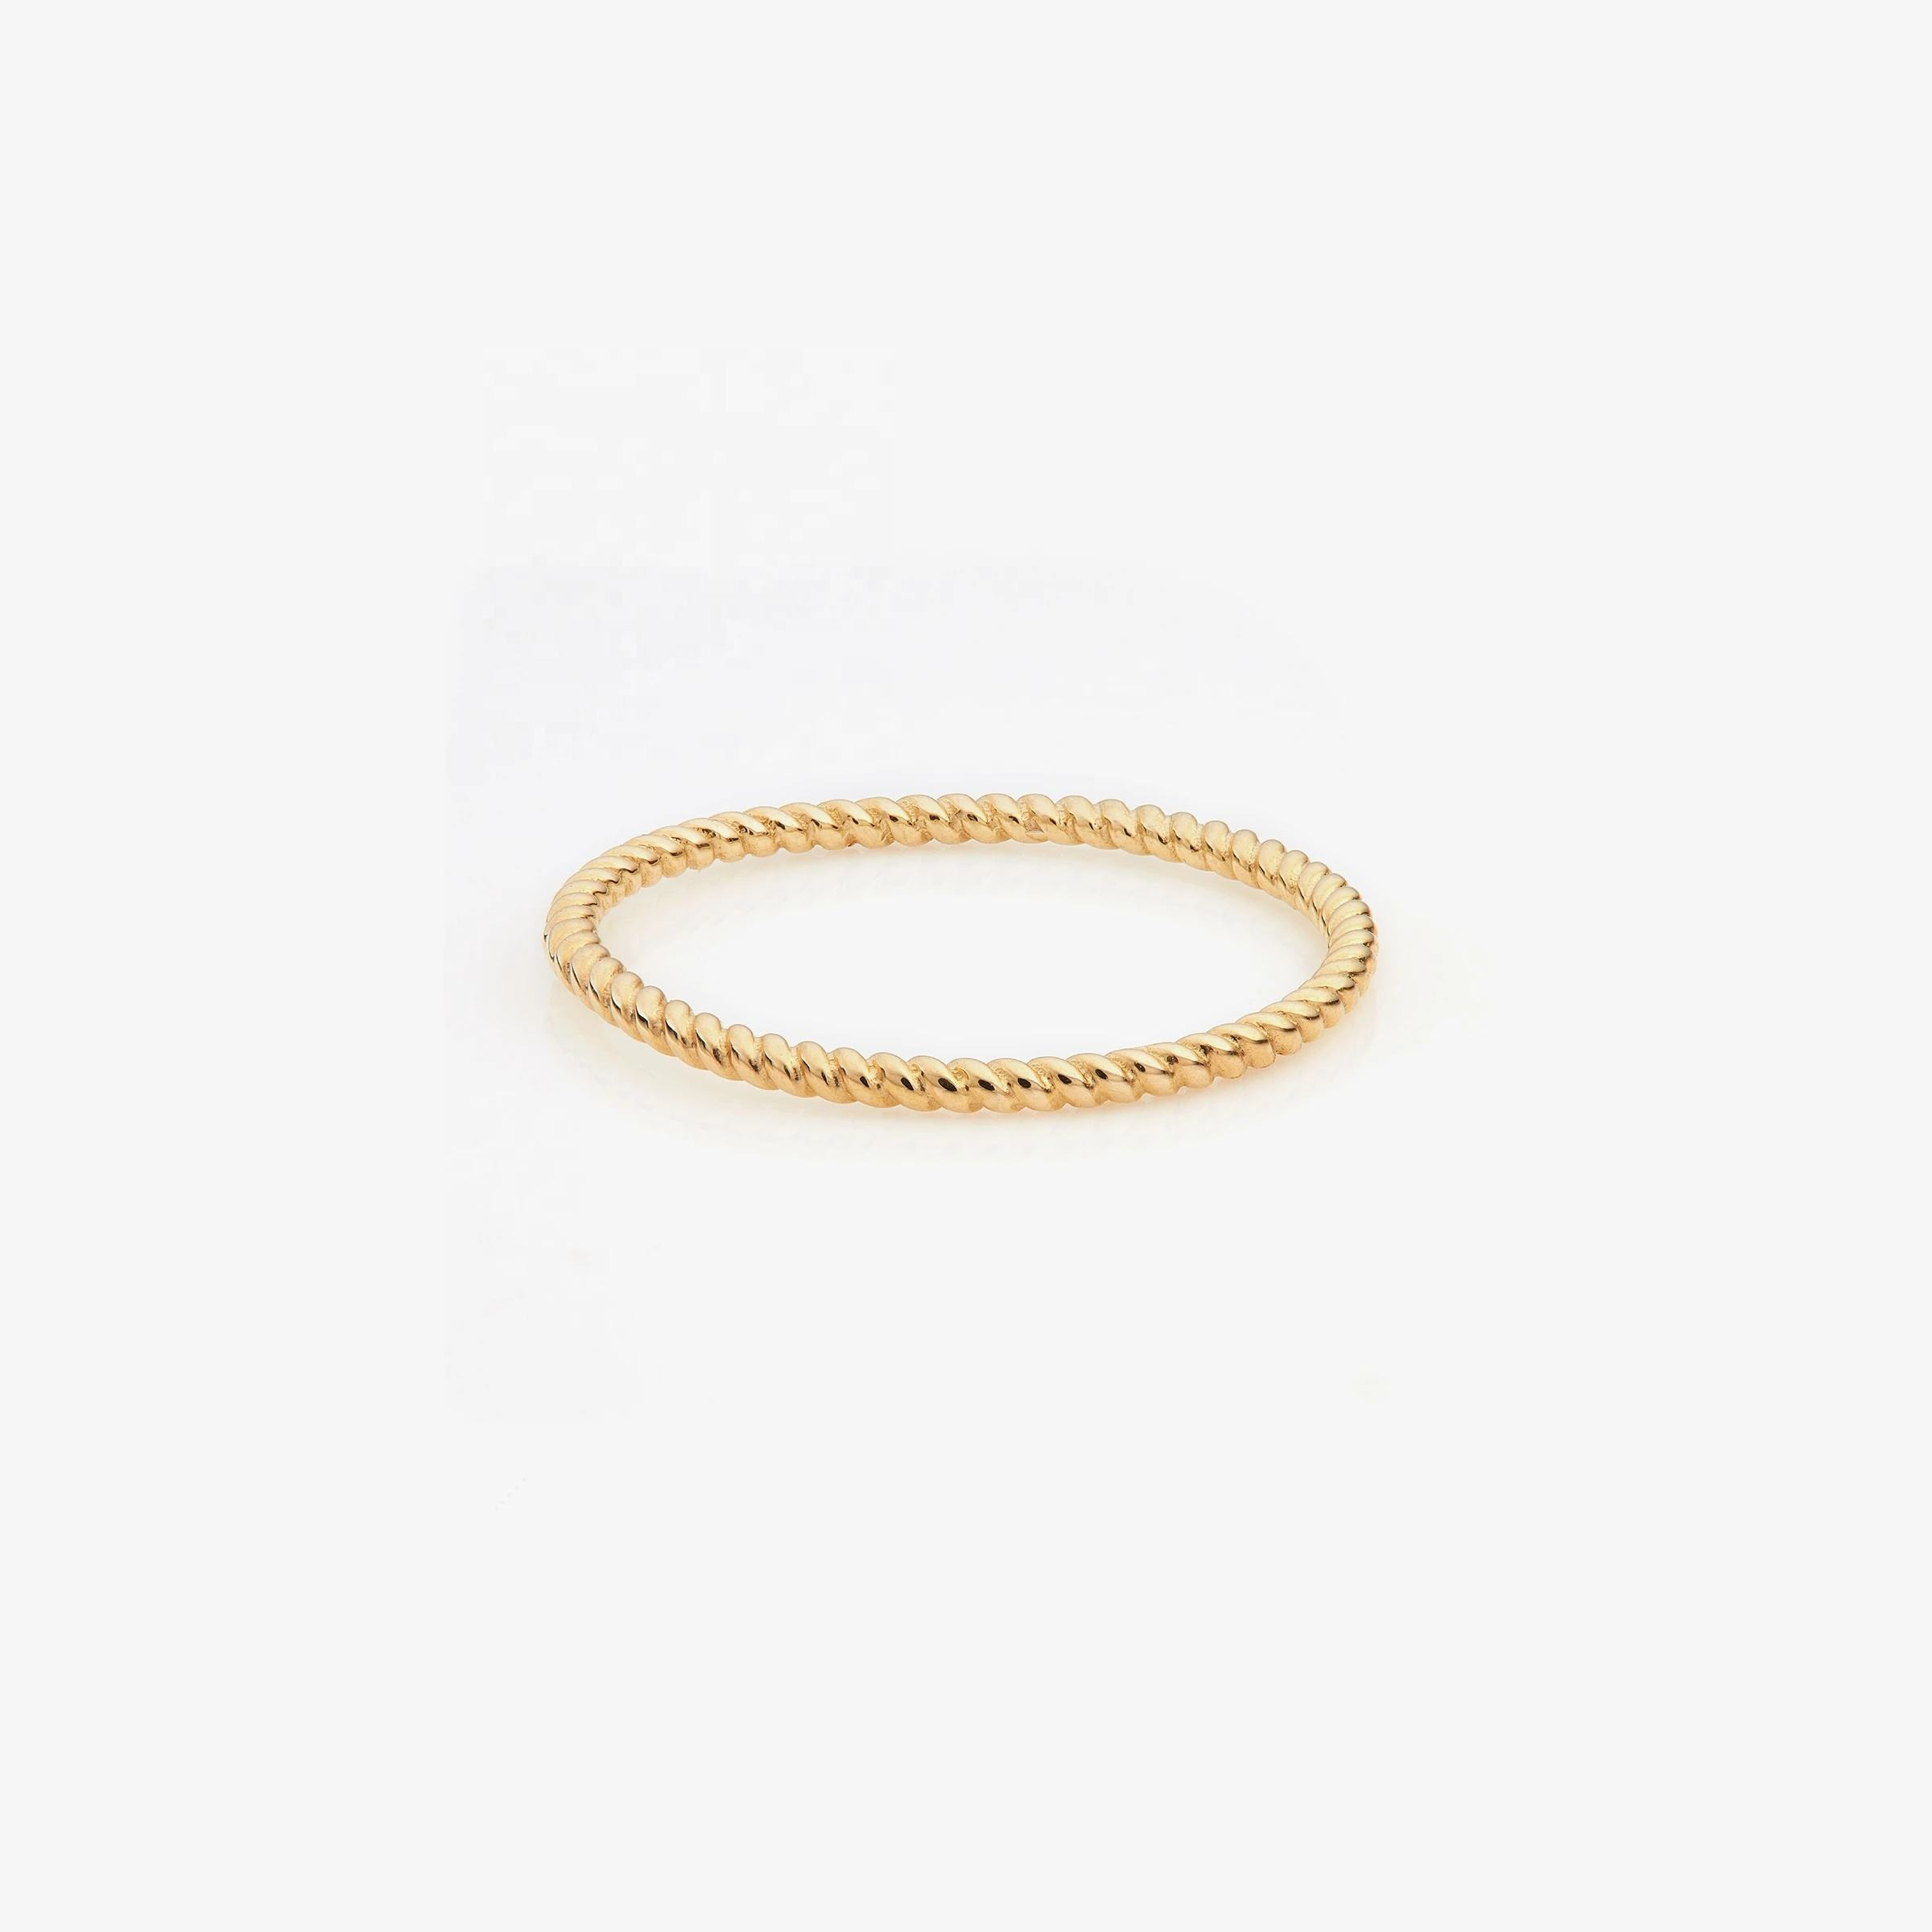 LOZRUNVE Custom Jewelry Gold Twisted Thread Stackable Ring for Women Silver 925